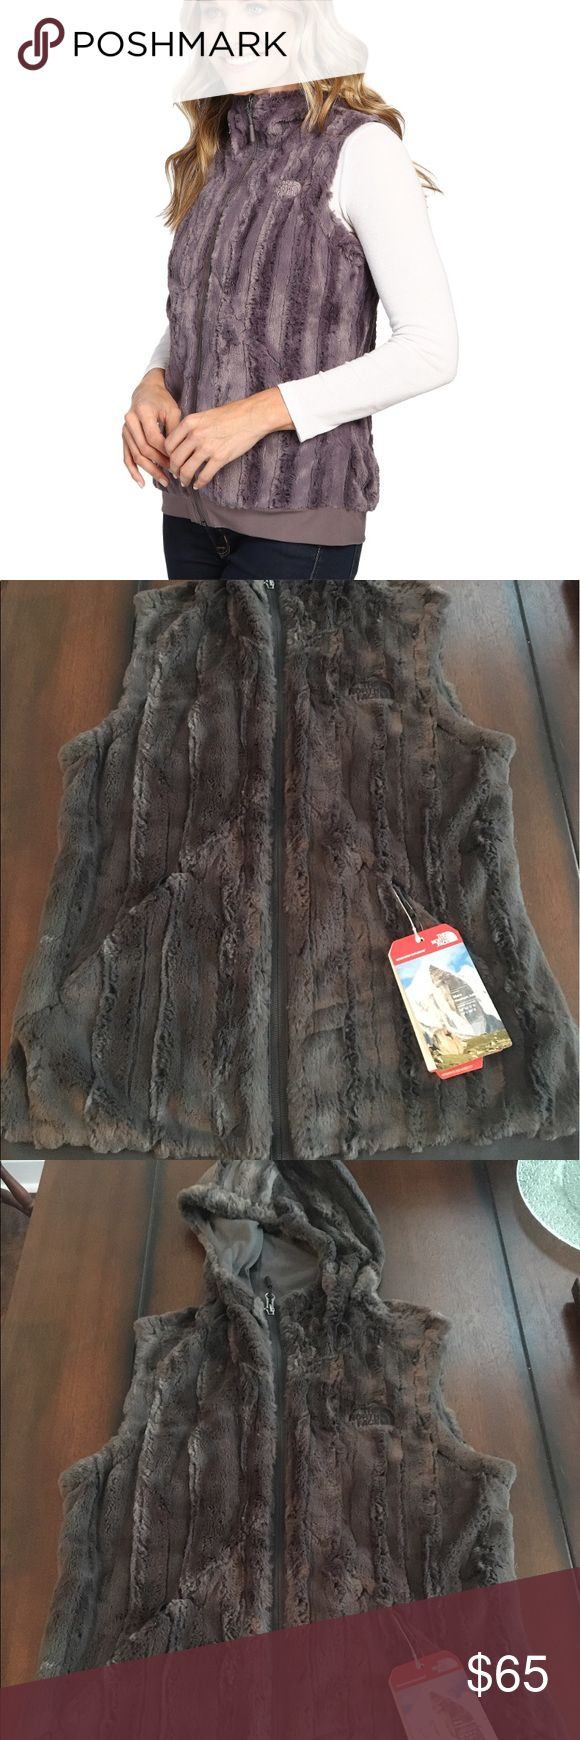 NWT The North Face Furlander Vest Asphalt Grey Super cute vest. New with tags. Never worn. The North Face Jackets & Coats Vests